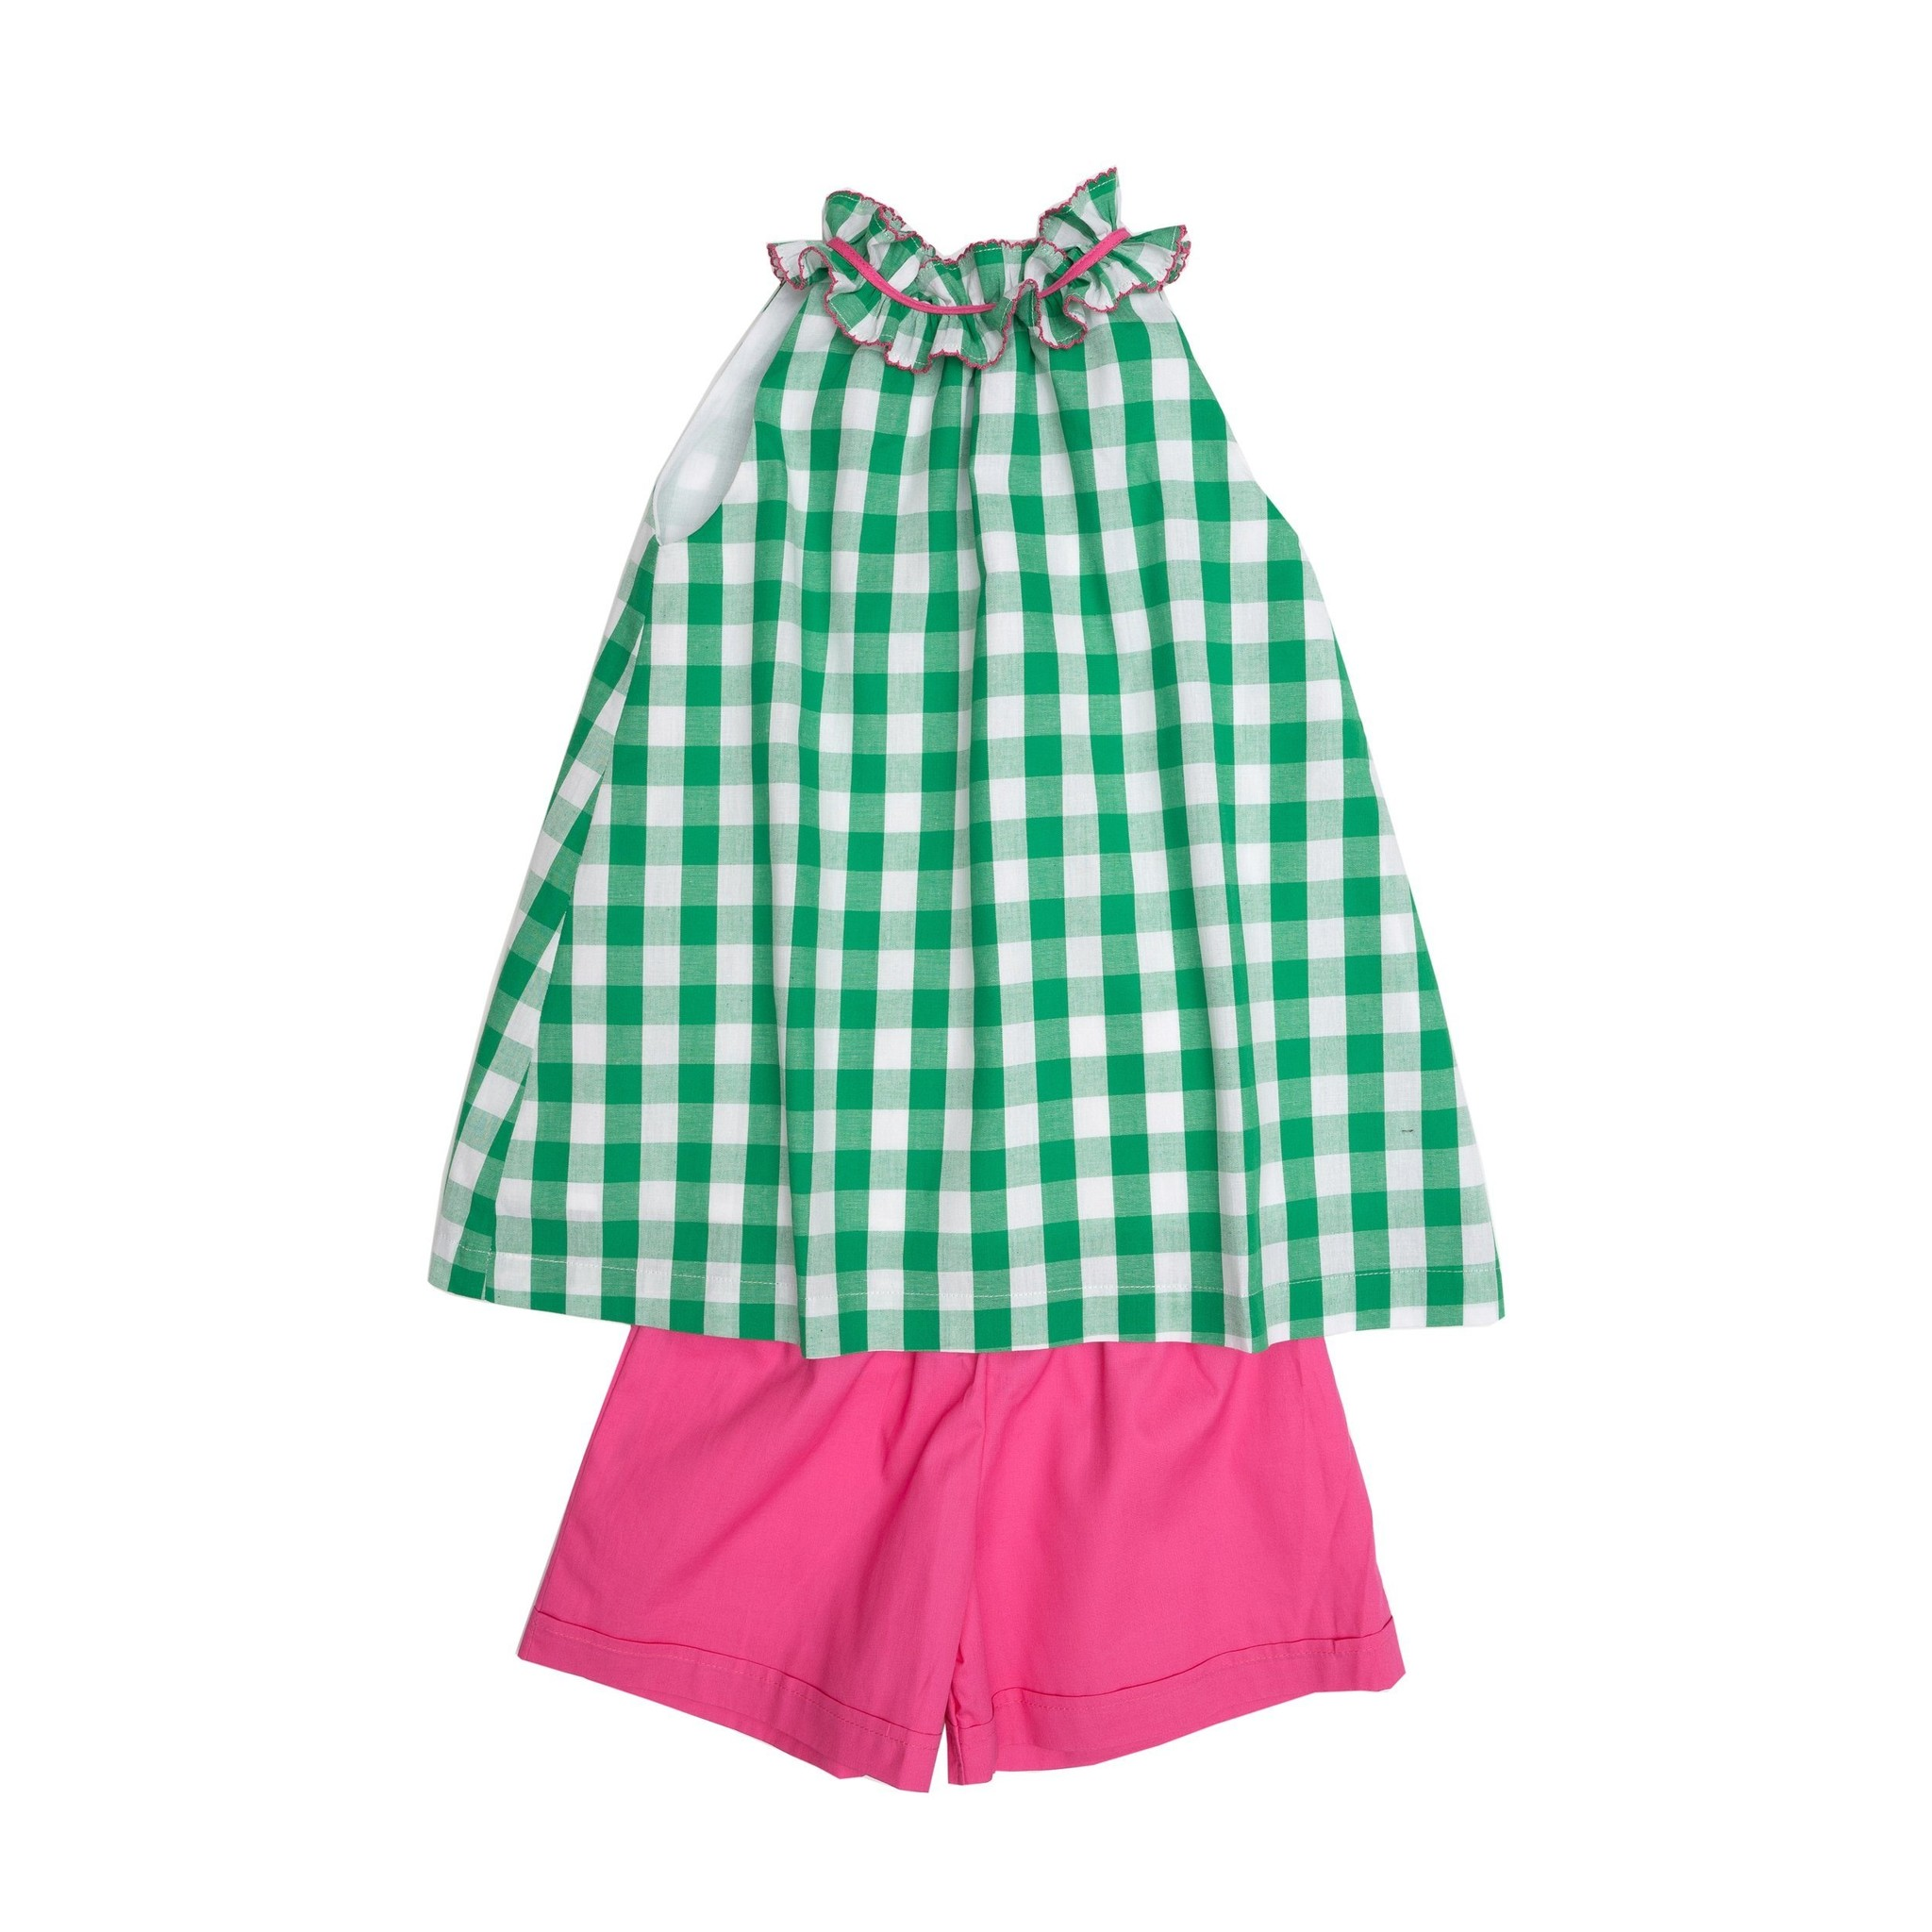 The Oaks Apparel Gemma Green Checked Set